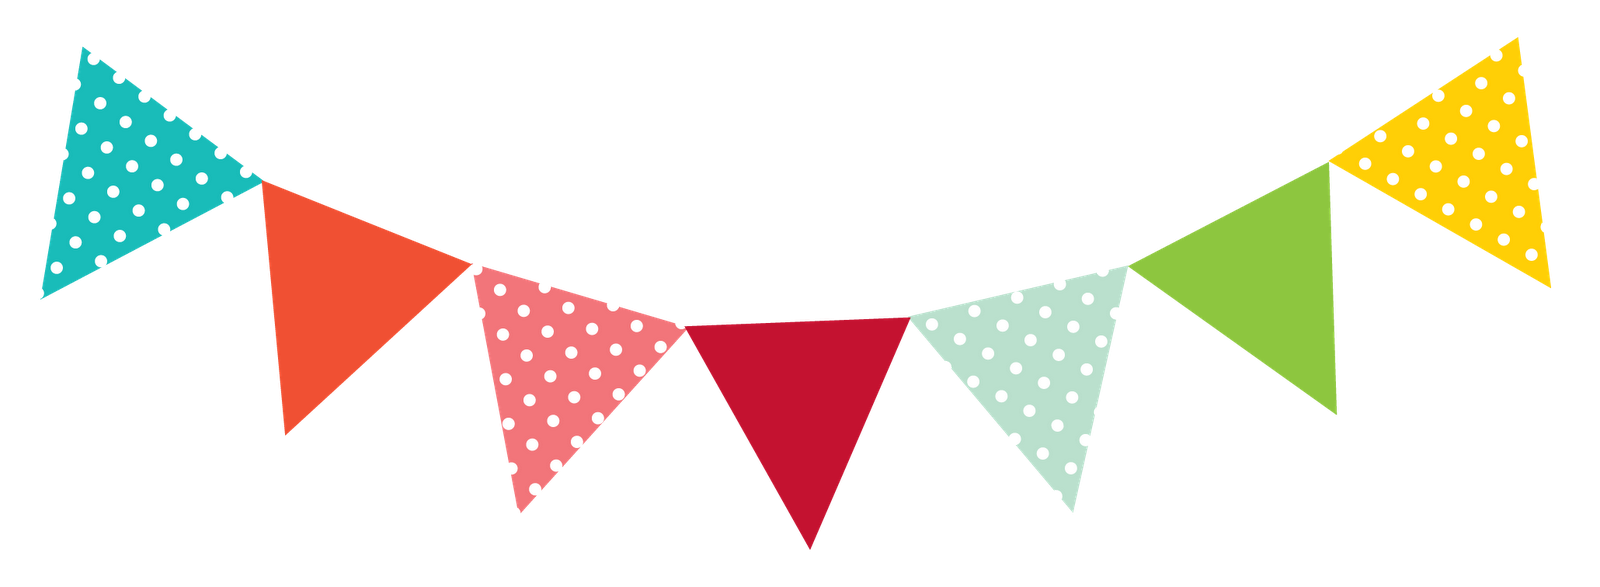 Bunting clipart #17, Download drawings